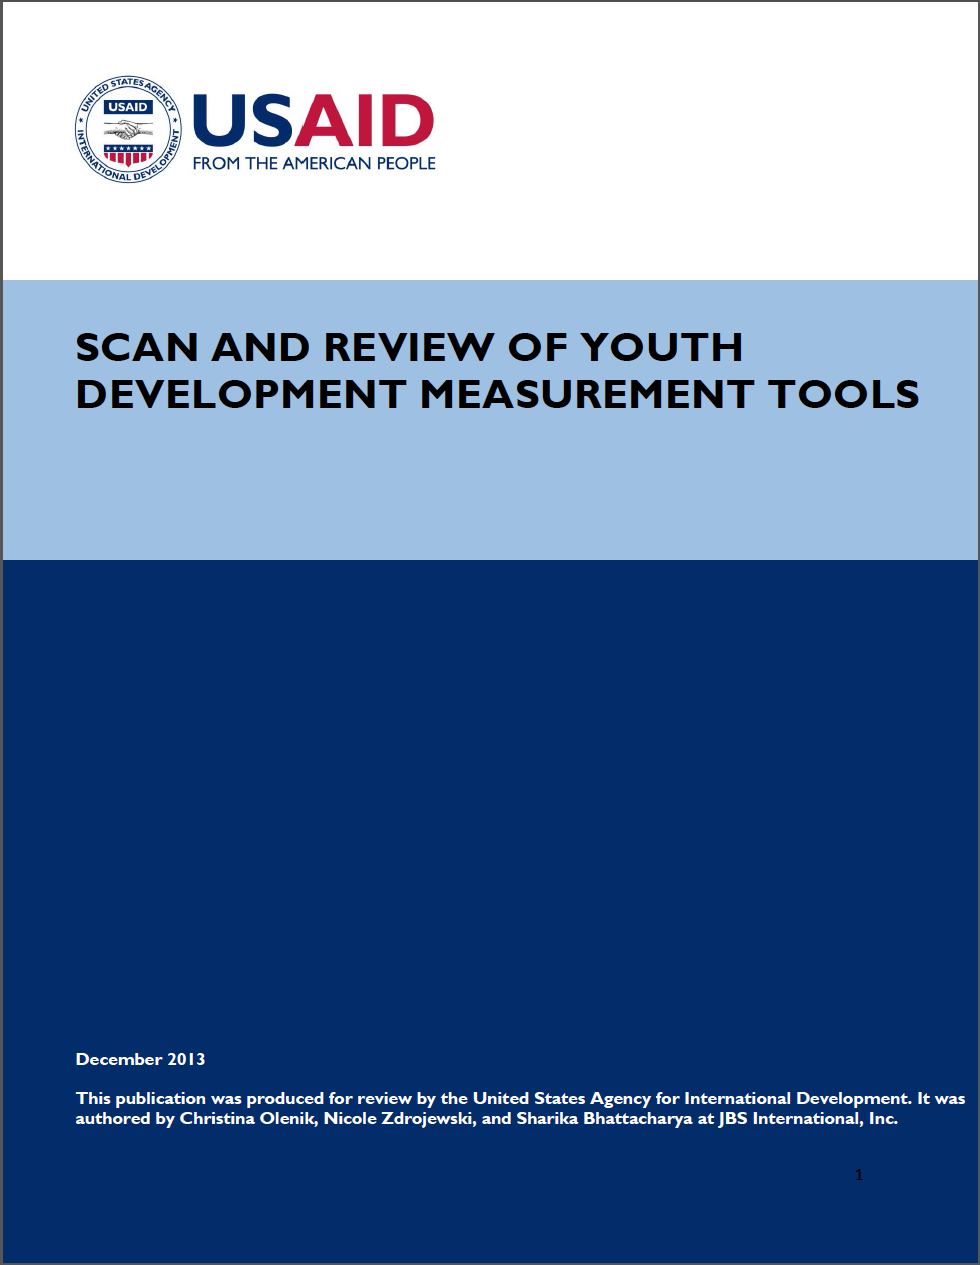 Scan and Review of Youth Development Measurement Tools